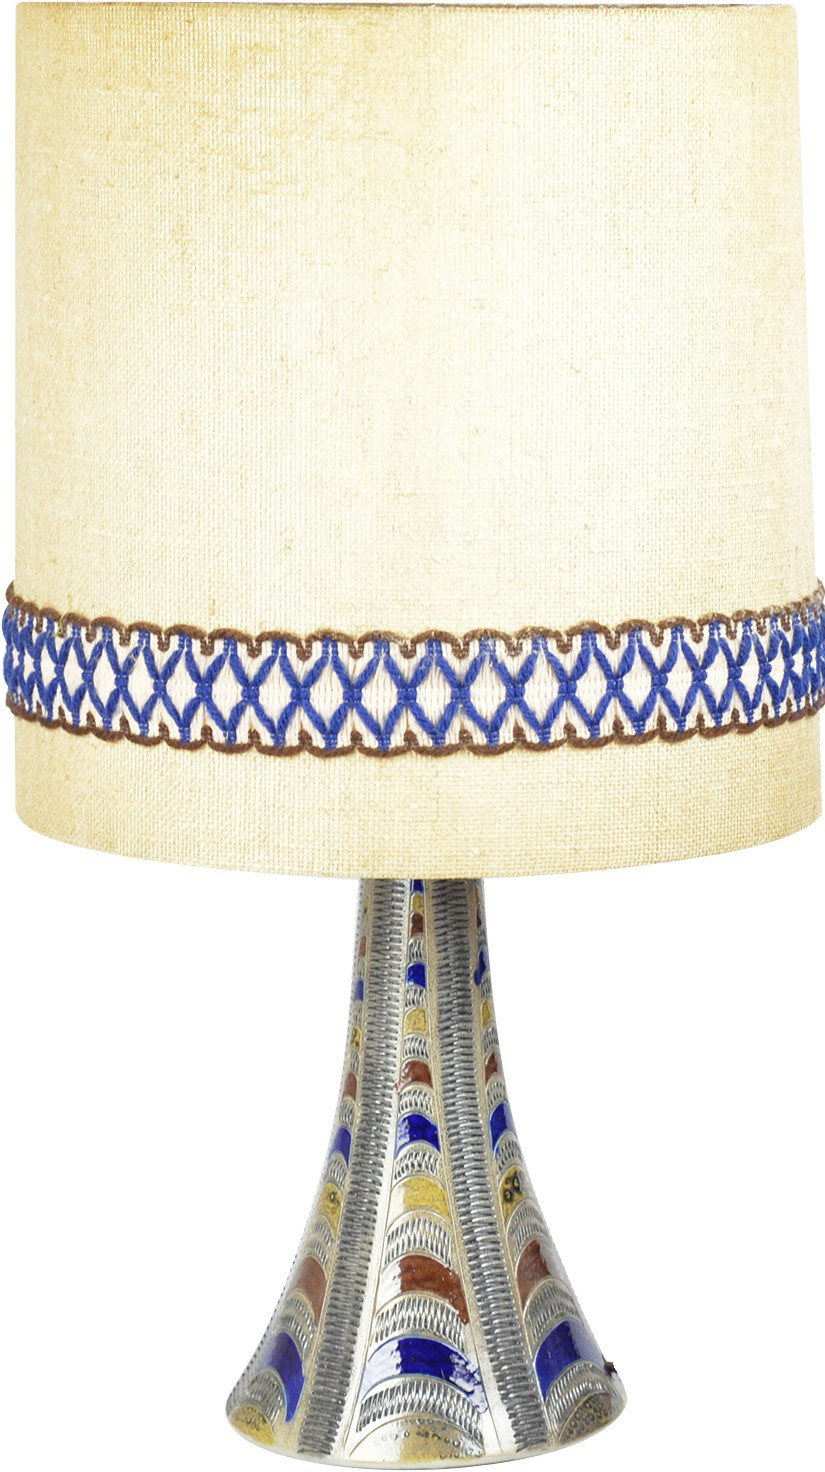 Table Lamp, Germany, 1960s